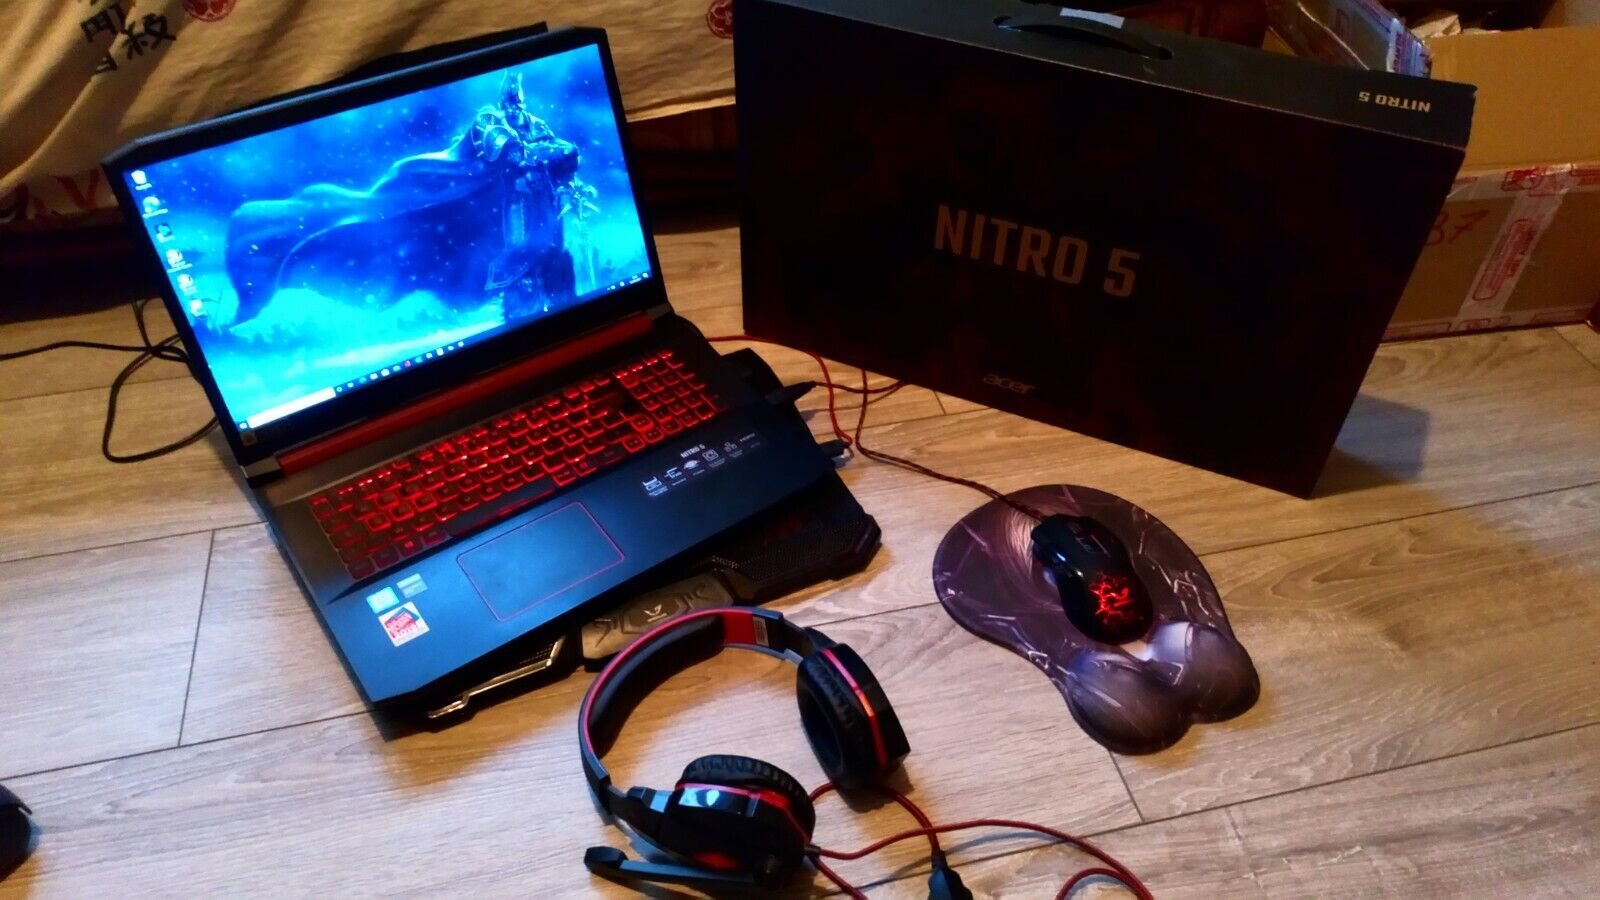 Pc portable gamer acer nitro 5 + souris gamer, casque micro, support, tapis wow